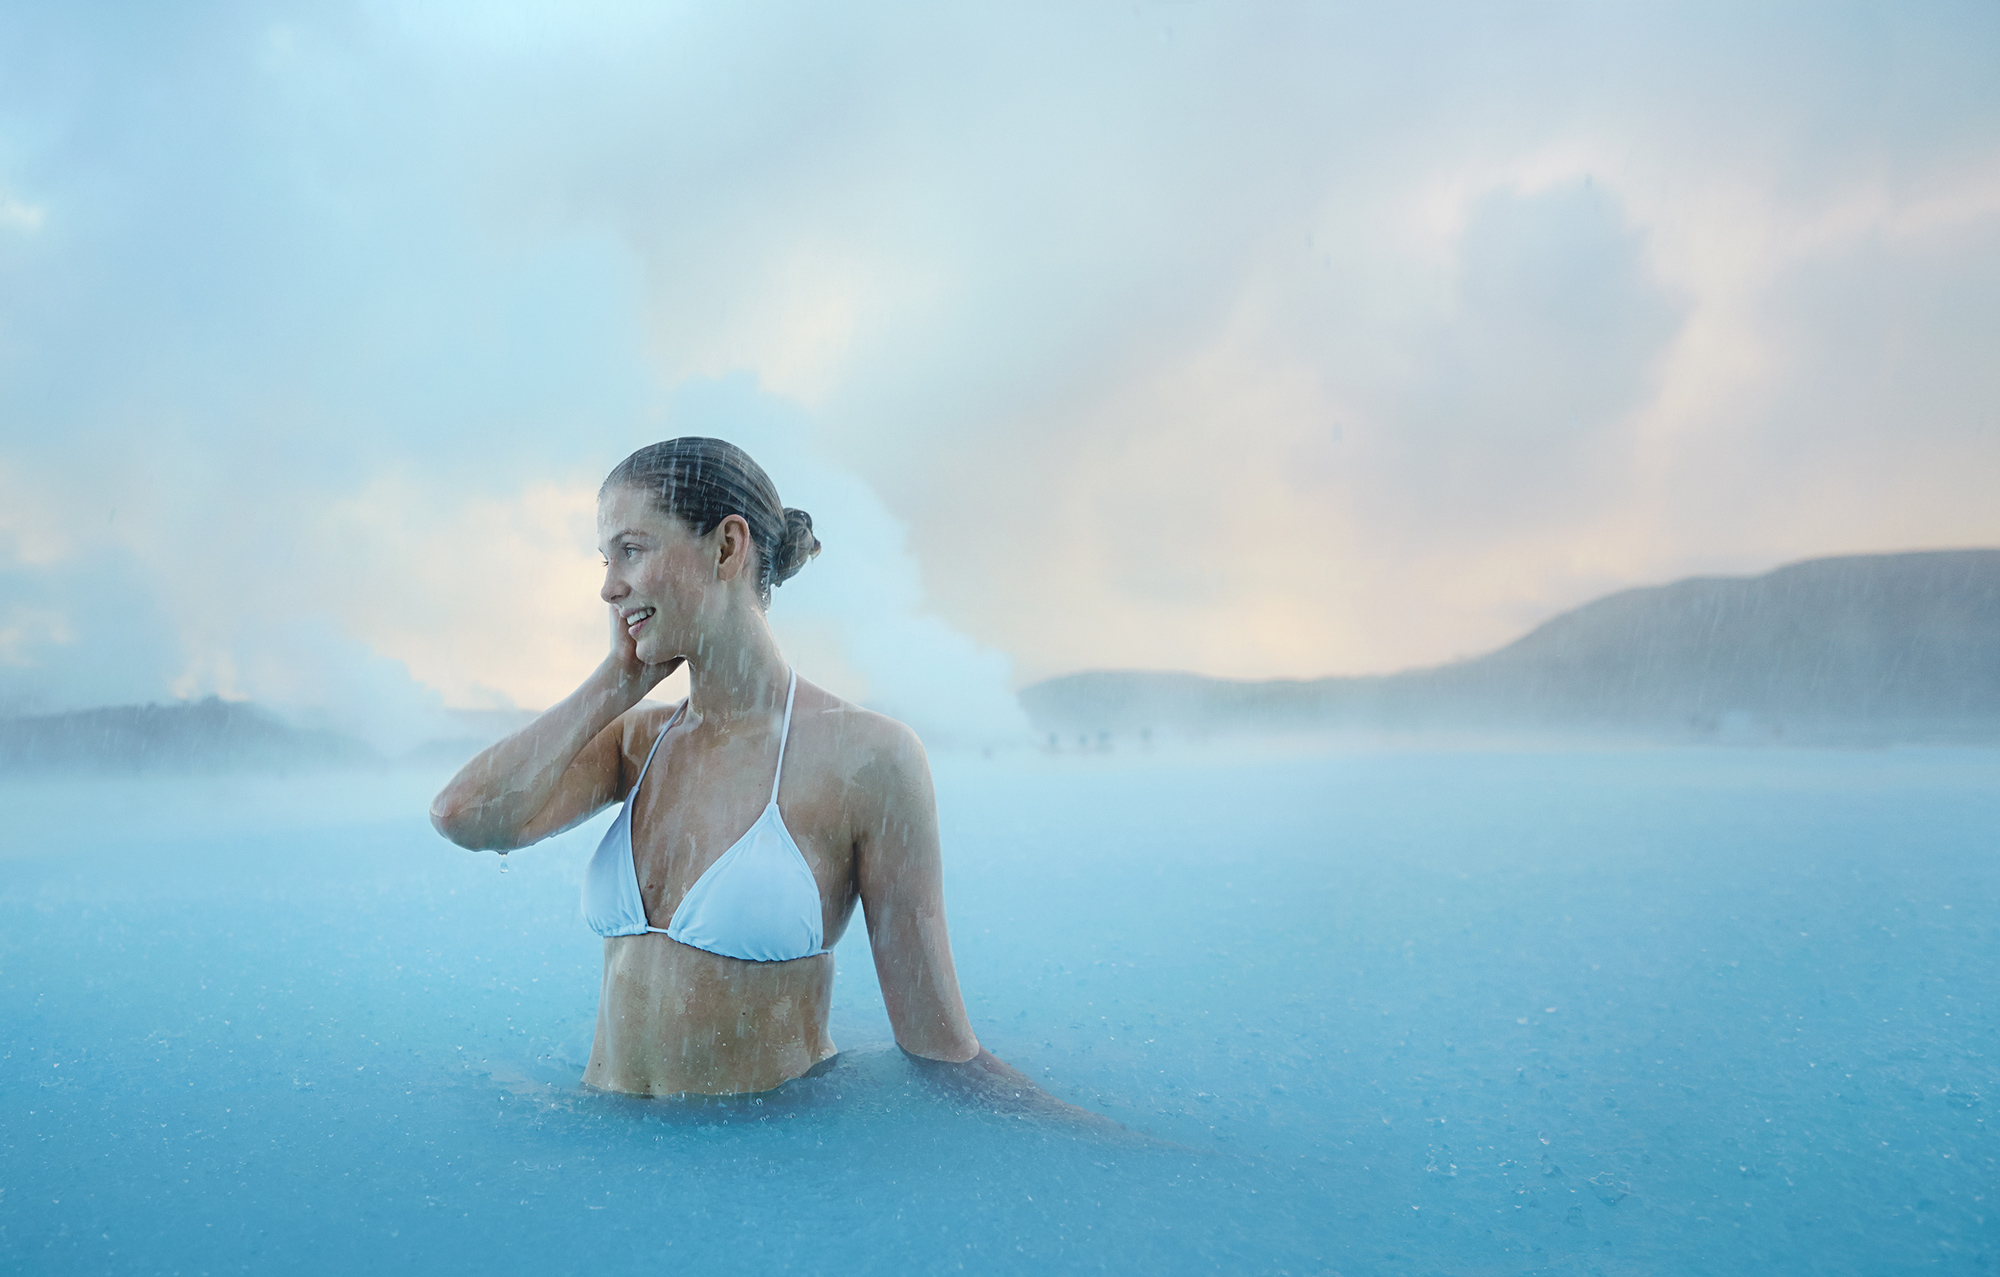 Epic 7 Day Summer Vacation Package with the Inside the Volcano Tour & Jokulsarlon Glacier Lagoon - day 7